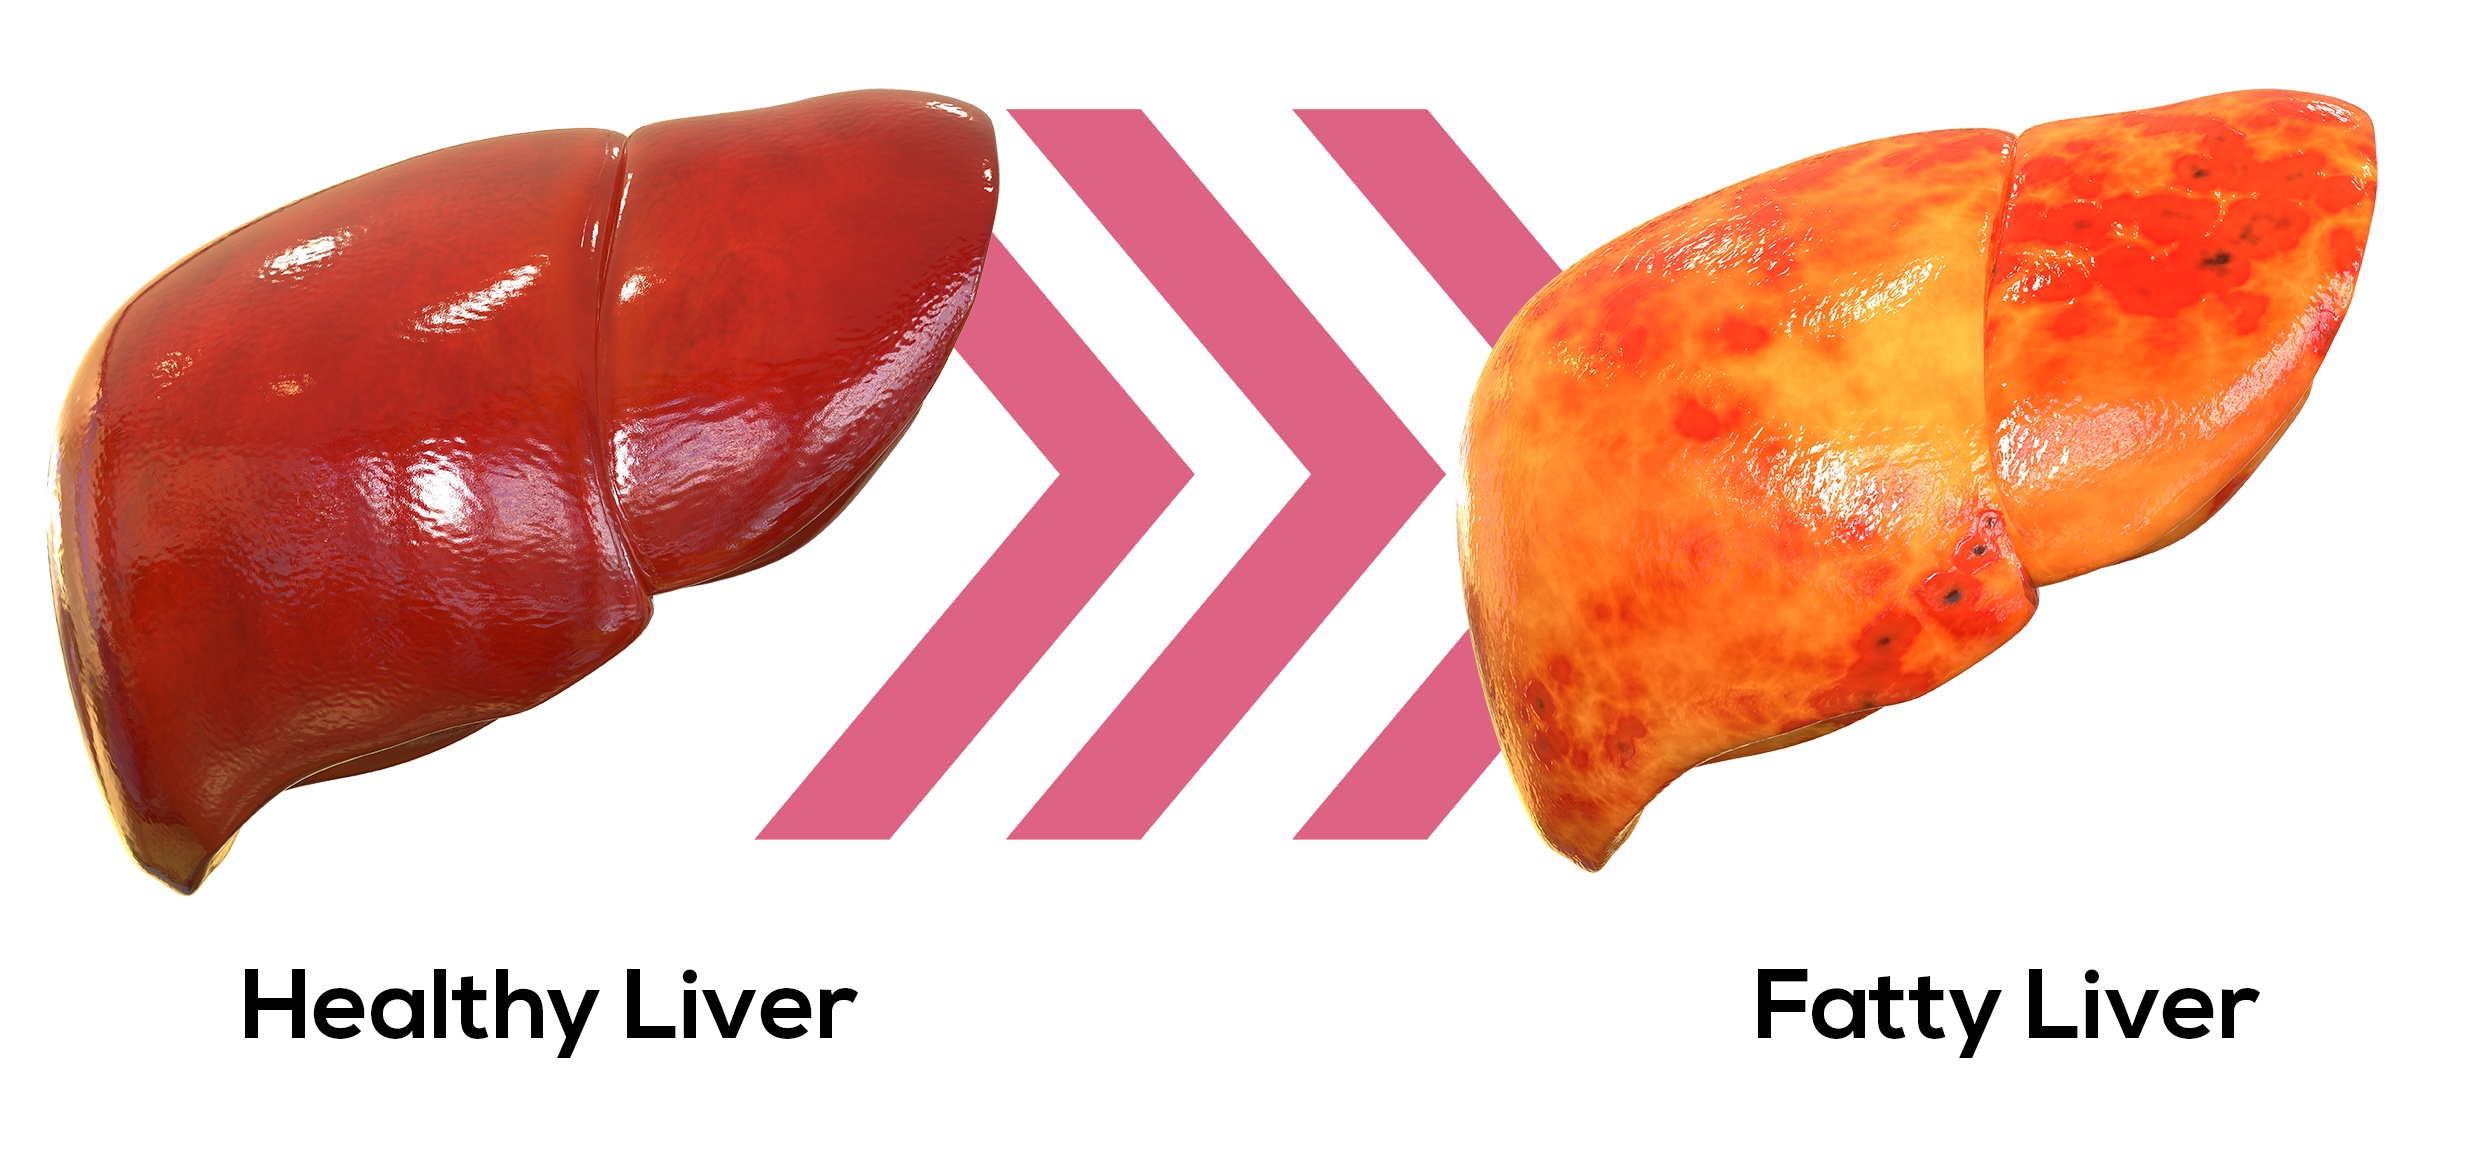 healty liver and fatty liver